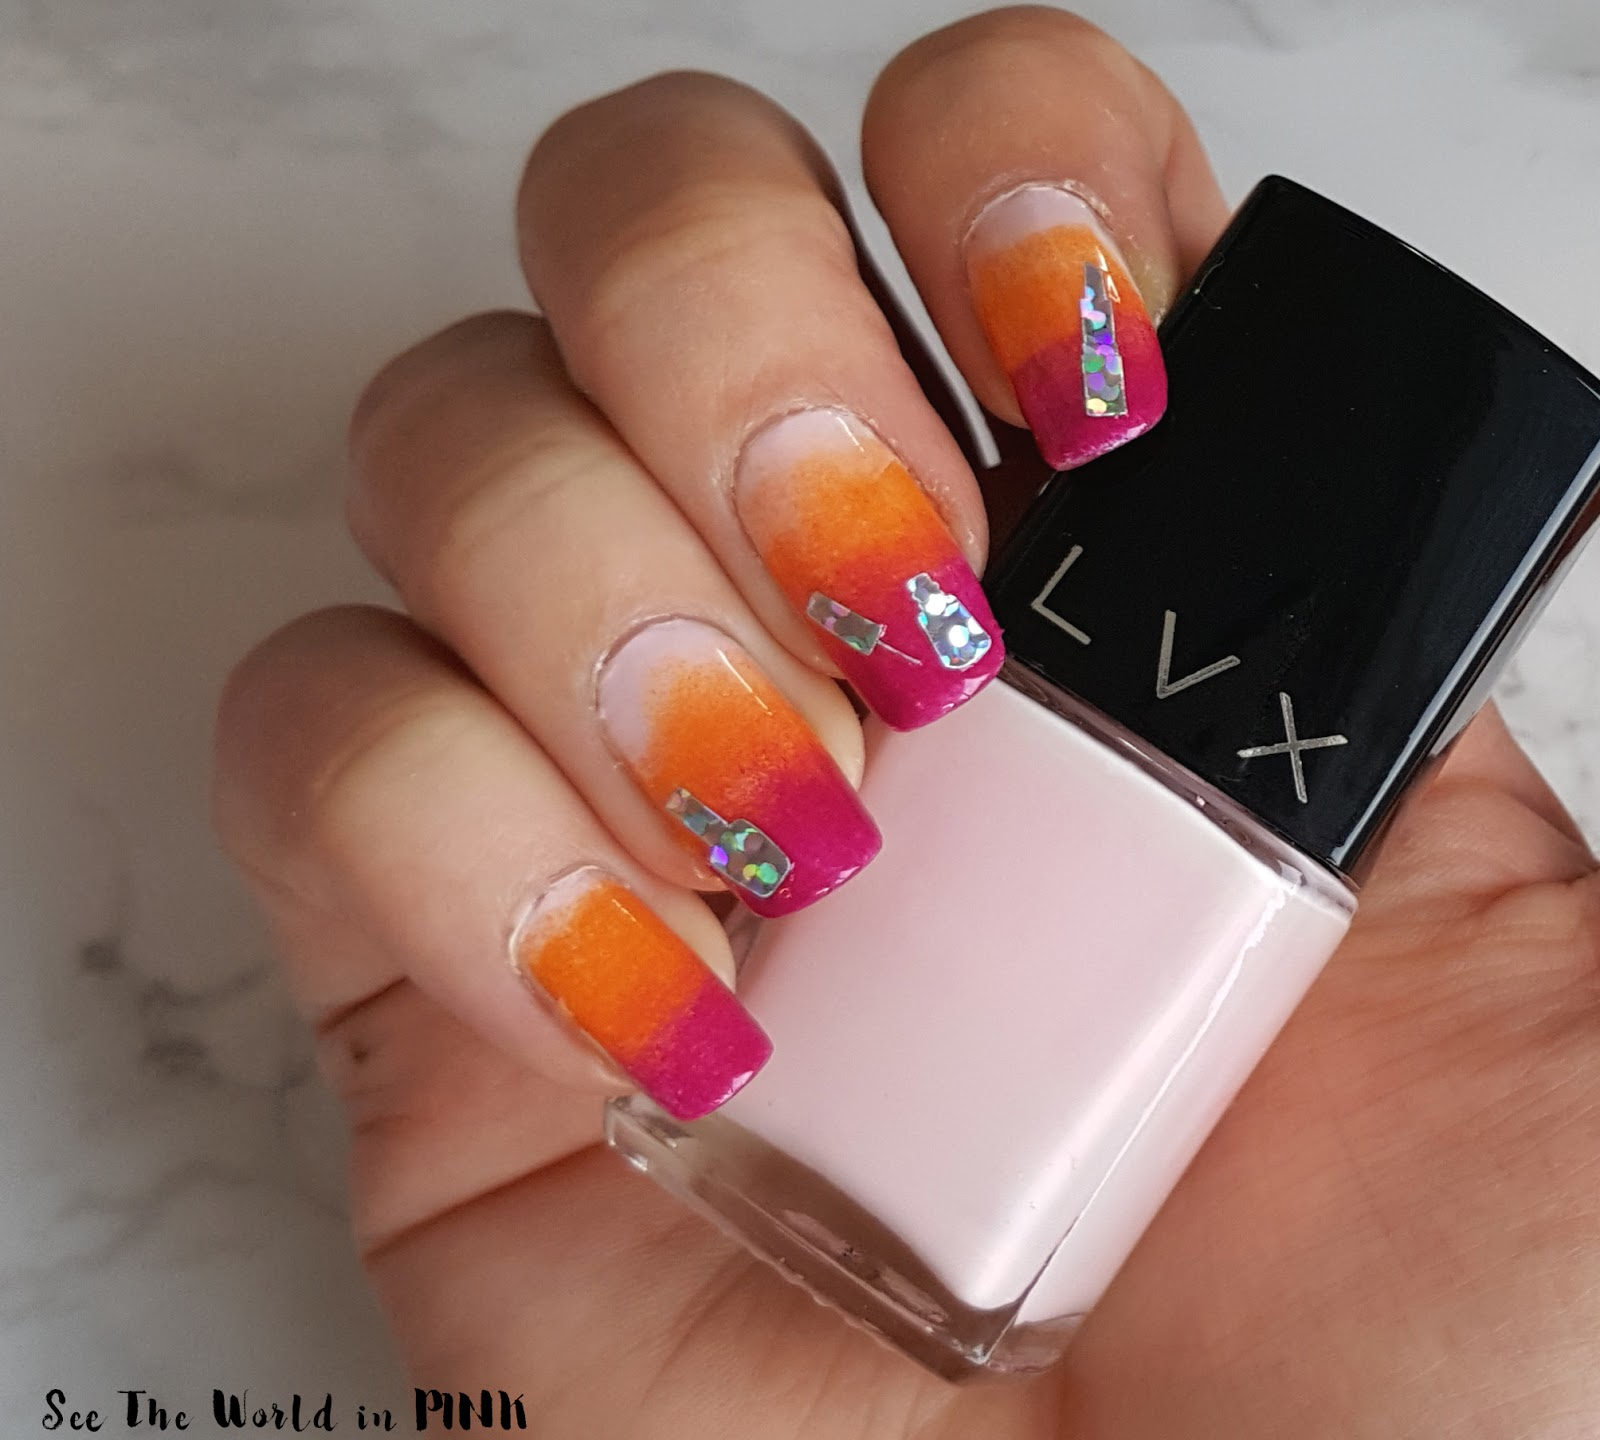 Manicure Monday - Gradient Ombre Nail with Beauty Decals!